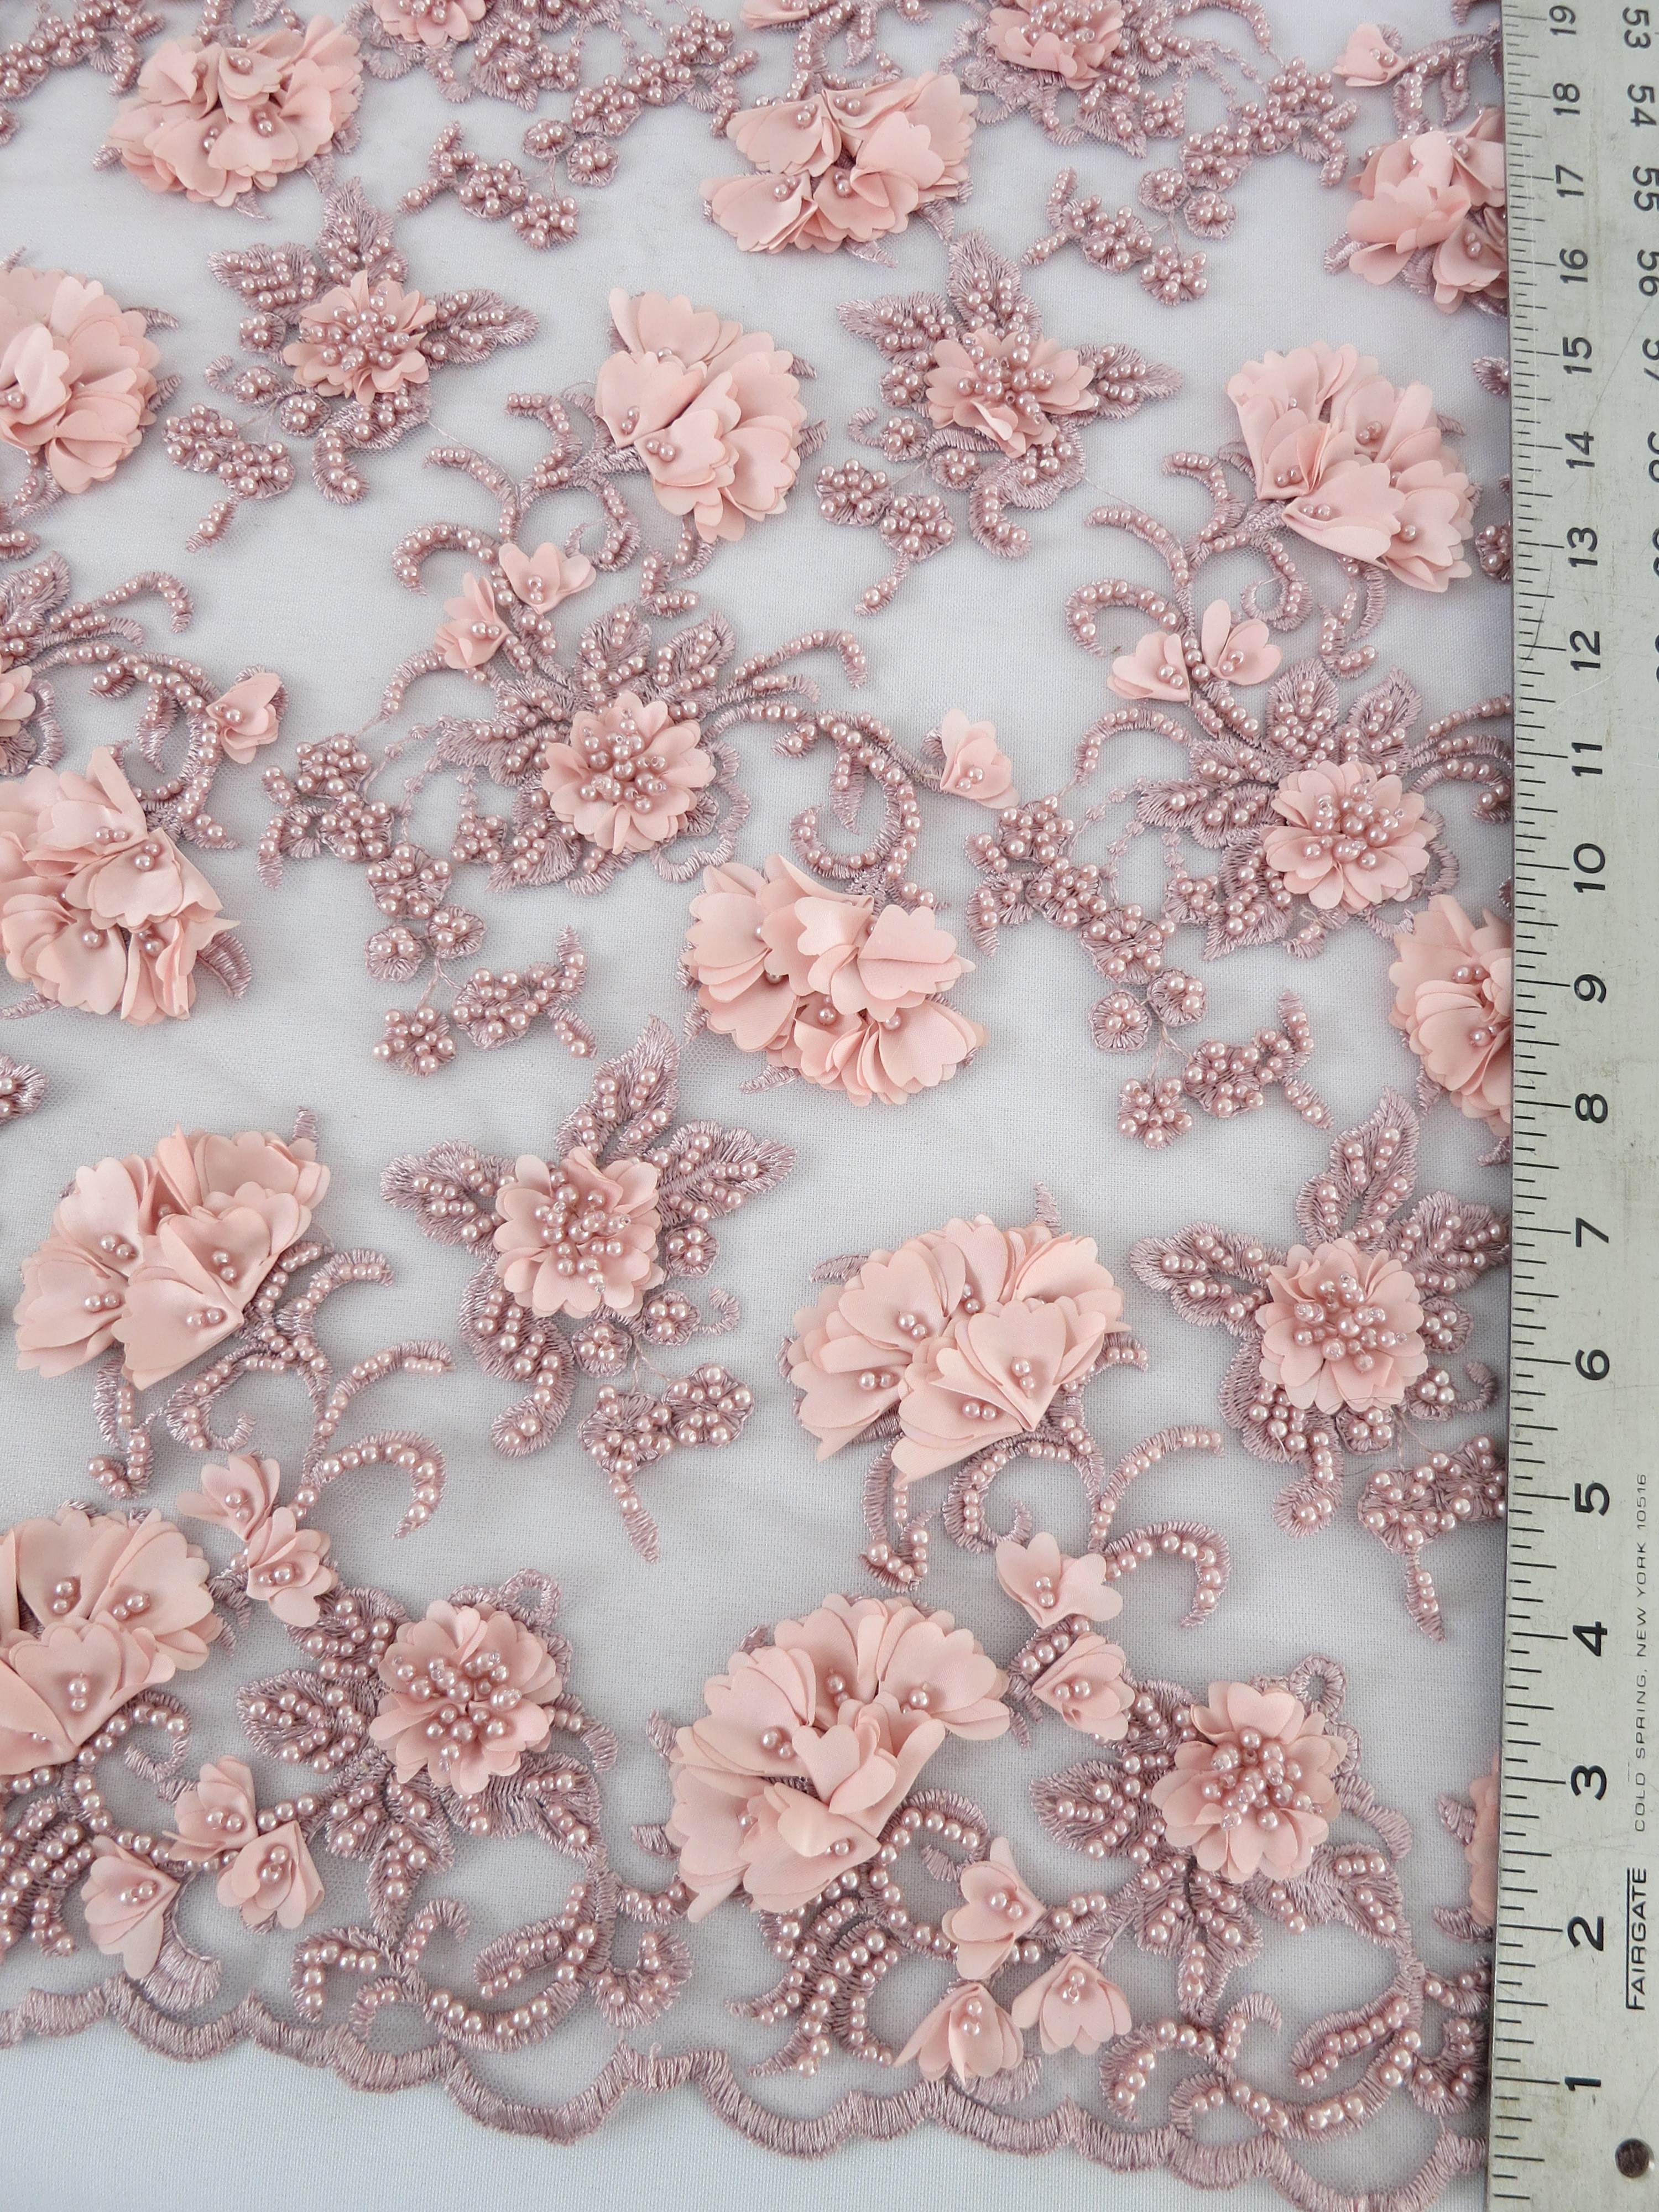 Pink floral beaded embroidered lace mesh fabric